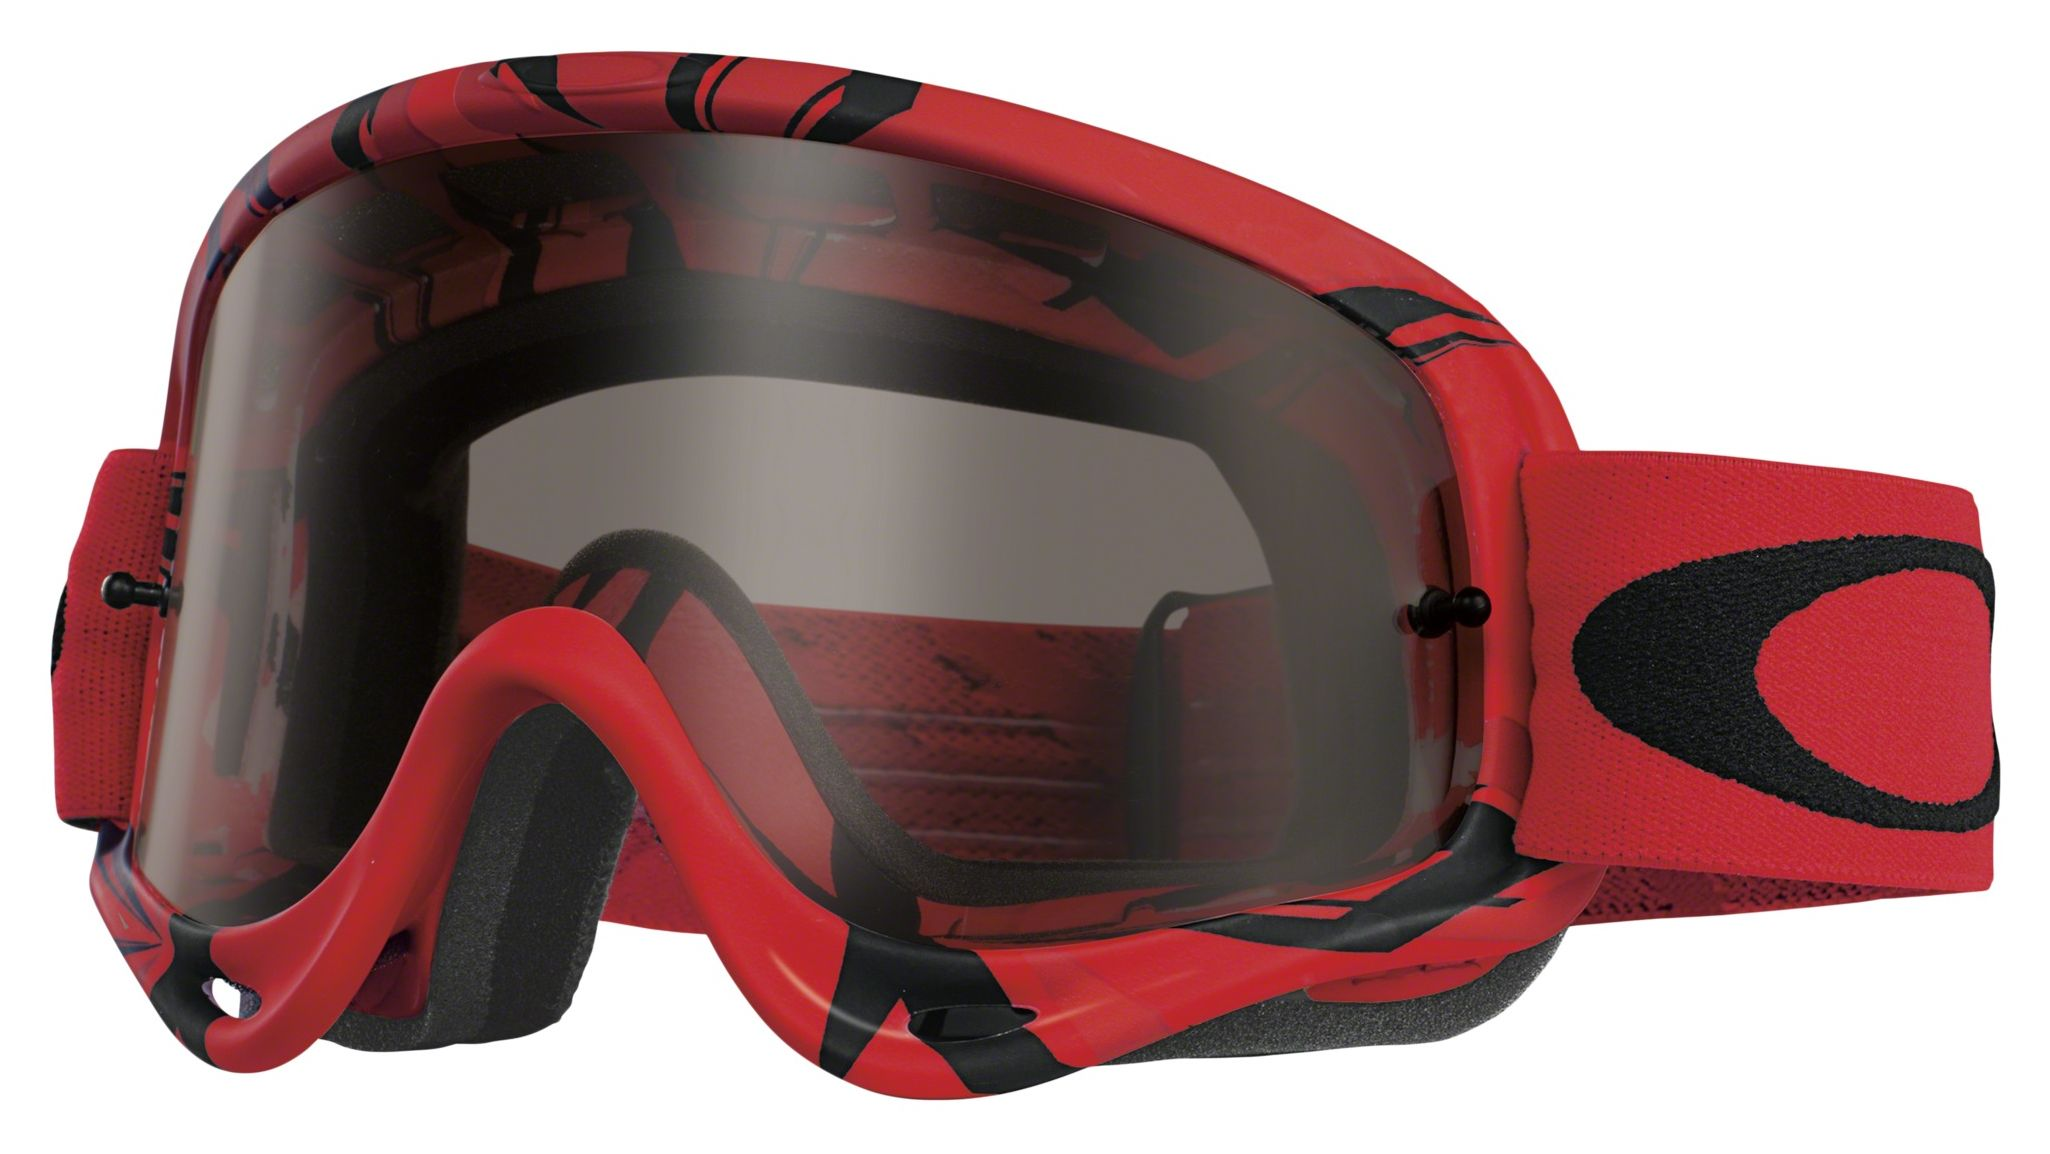 oakley o frame mx goggles cycle gear